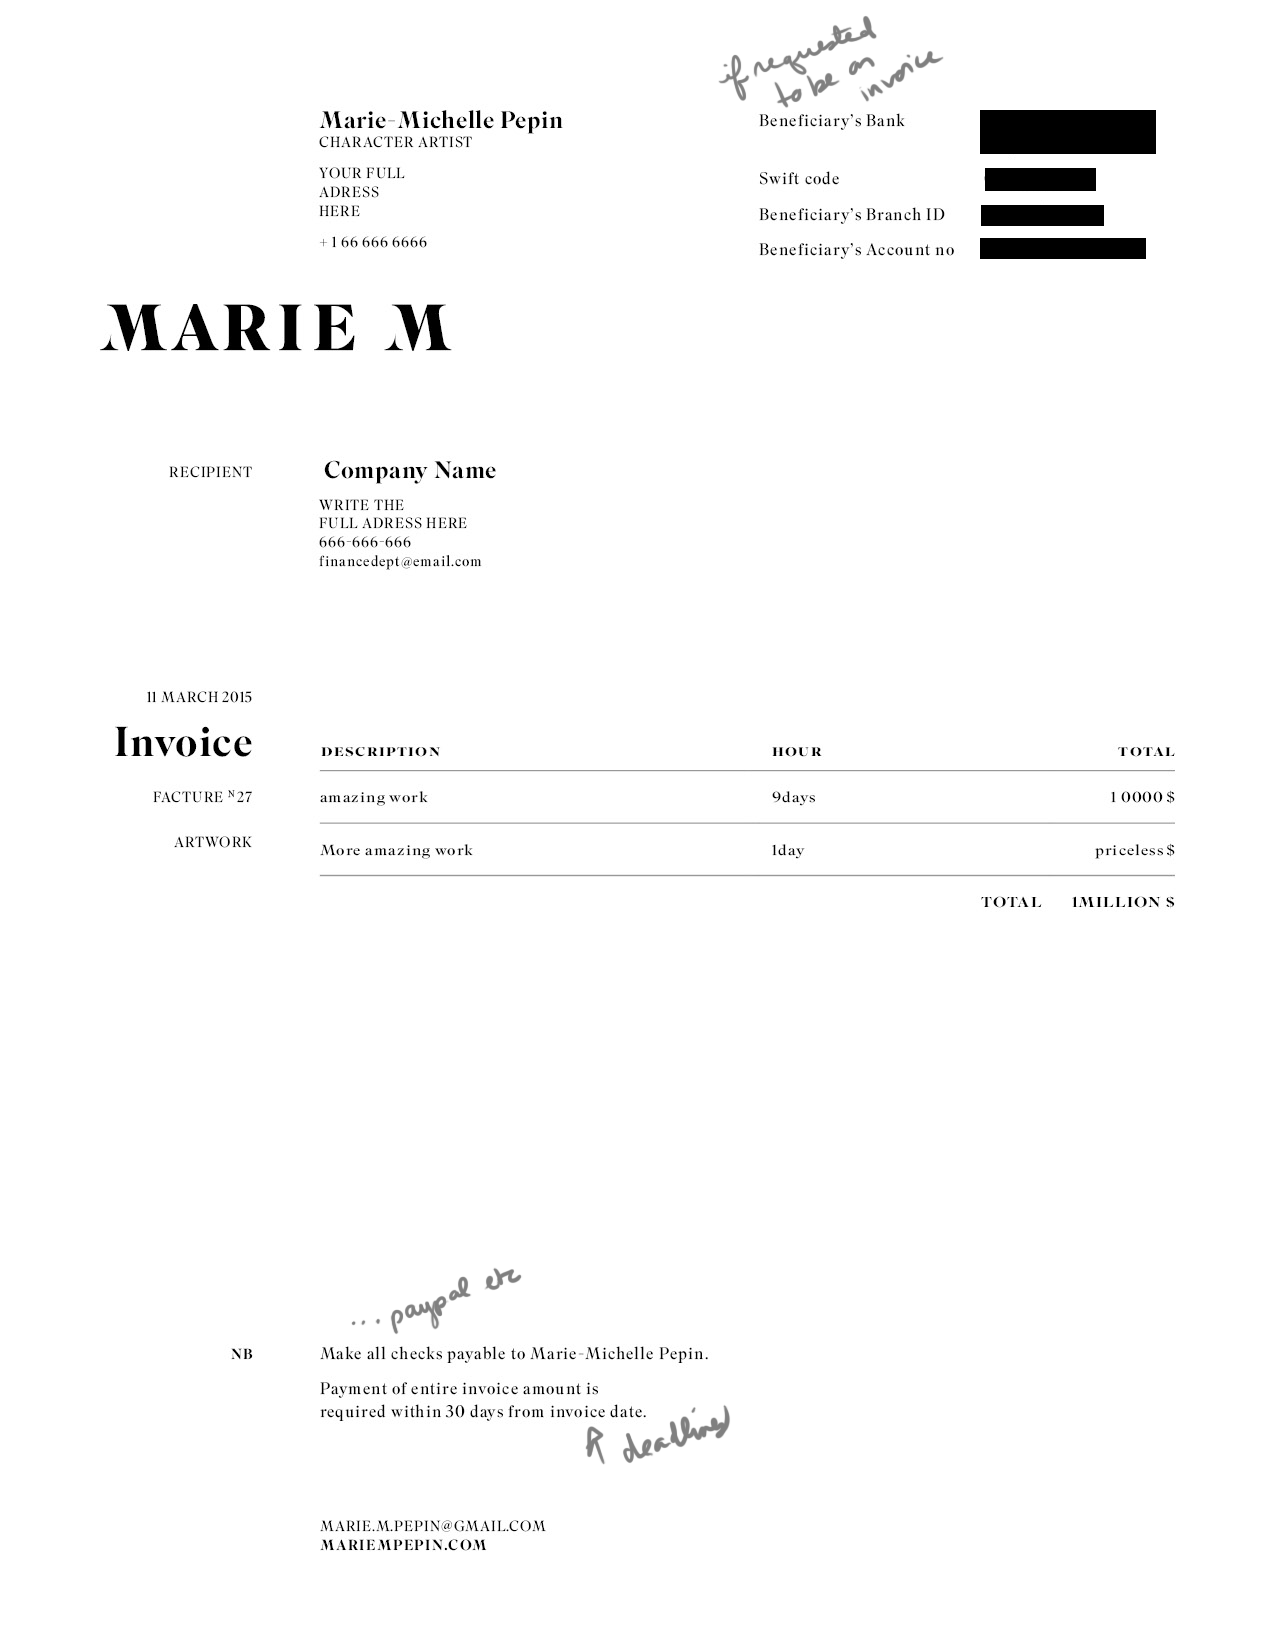 Artist Invoice Template Artist Invoice Samples Spreadsheet Templates for Busines Spreadsheet Templates for Busines Painters Receipt For Work